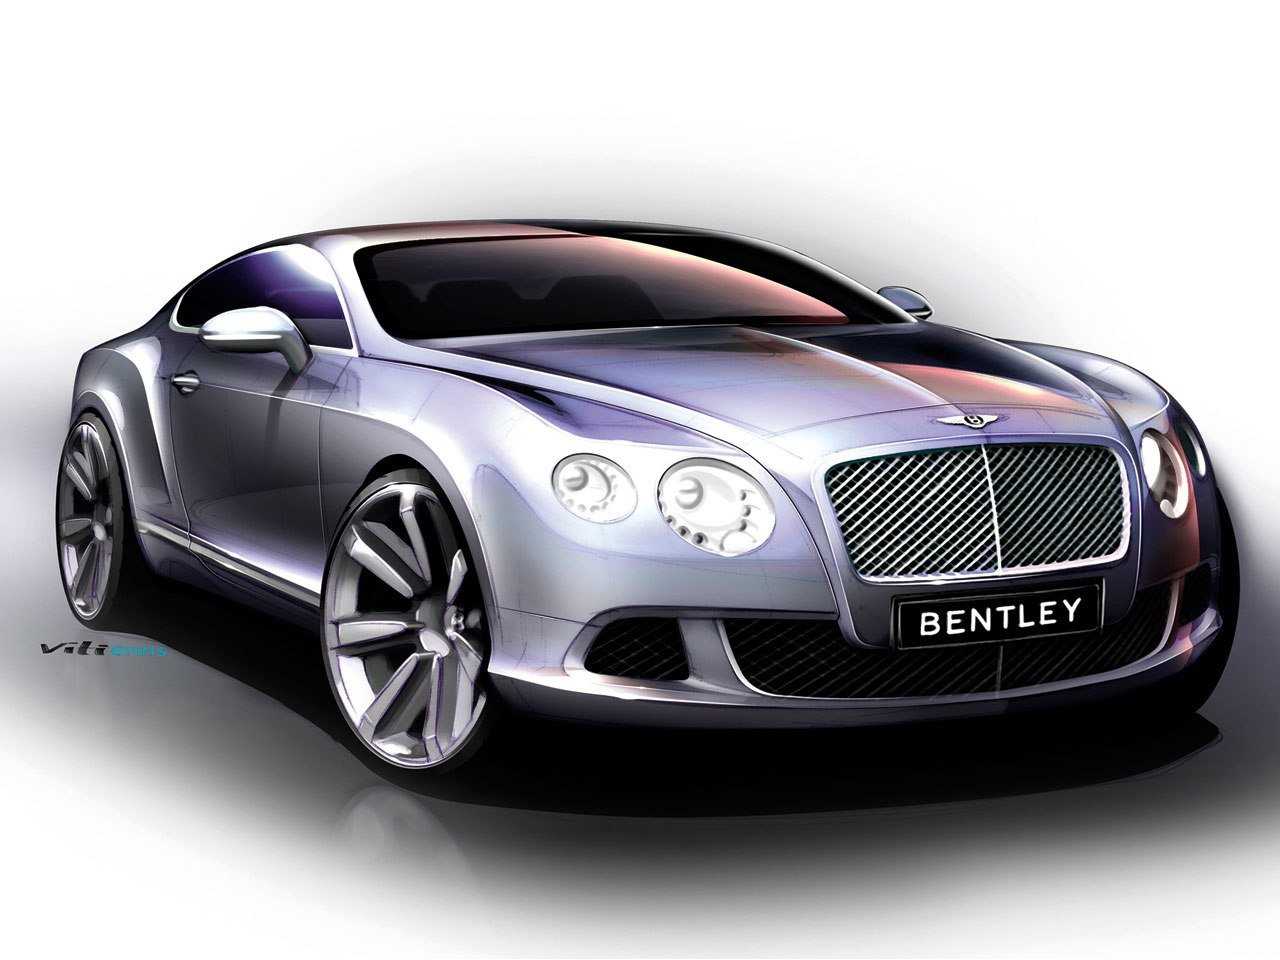 Latest Bentley Continental Gt 2010 Supercar Sketches Free Download